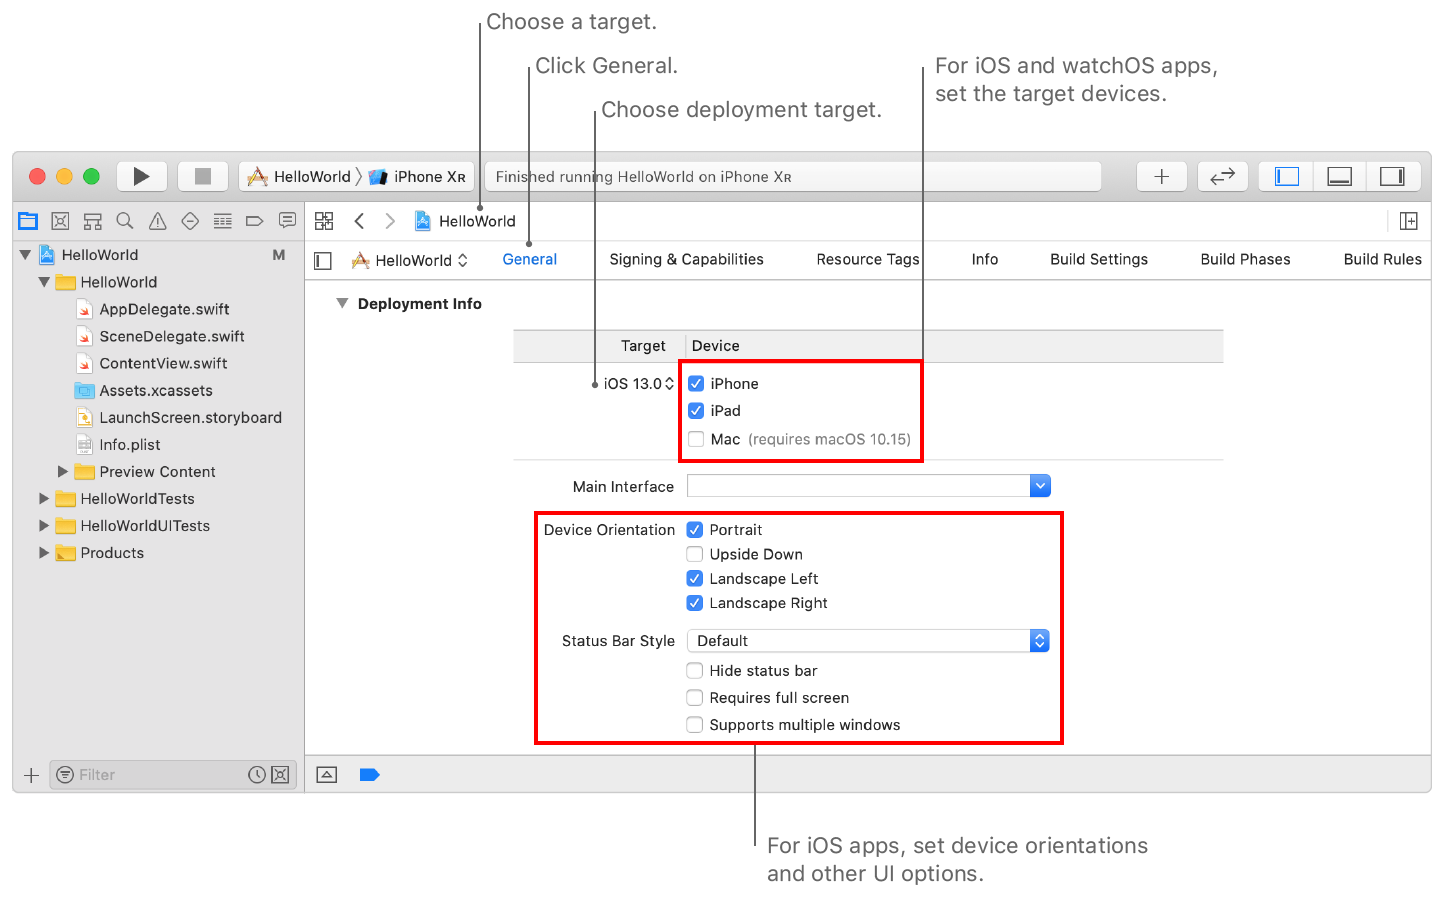 Screenshot showing the Deployment Info settings for an iOS app, where you set the deployment target and OS versions, on the General pane of the project editor.